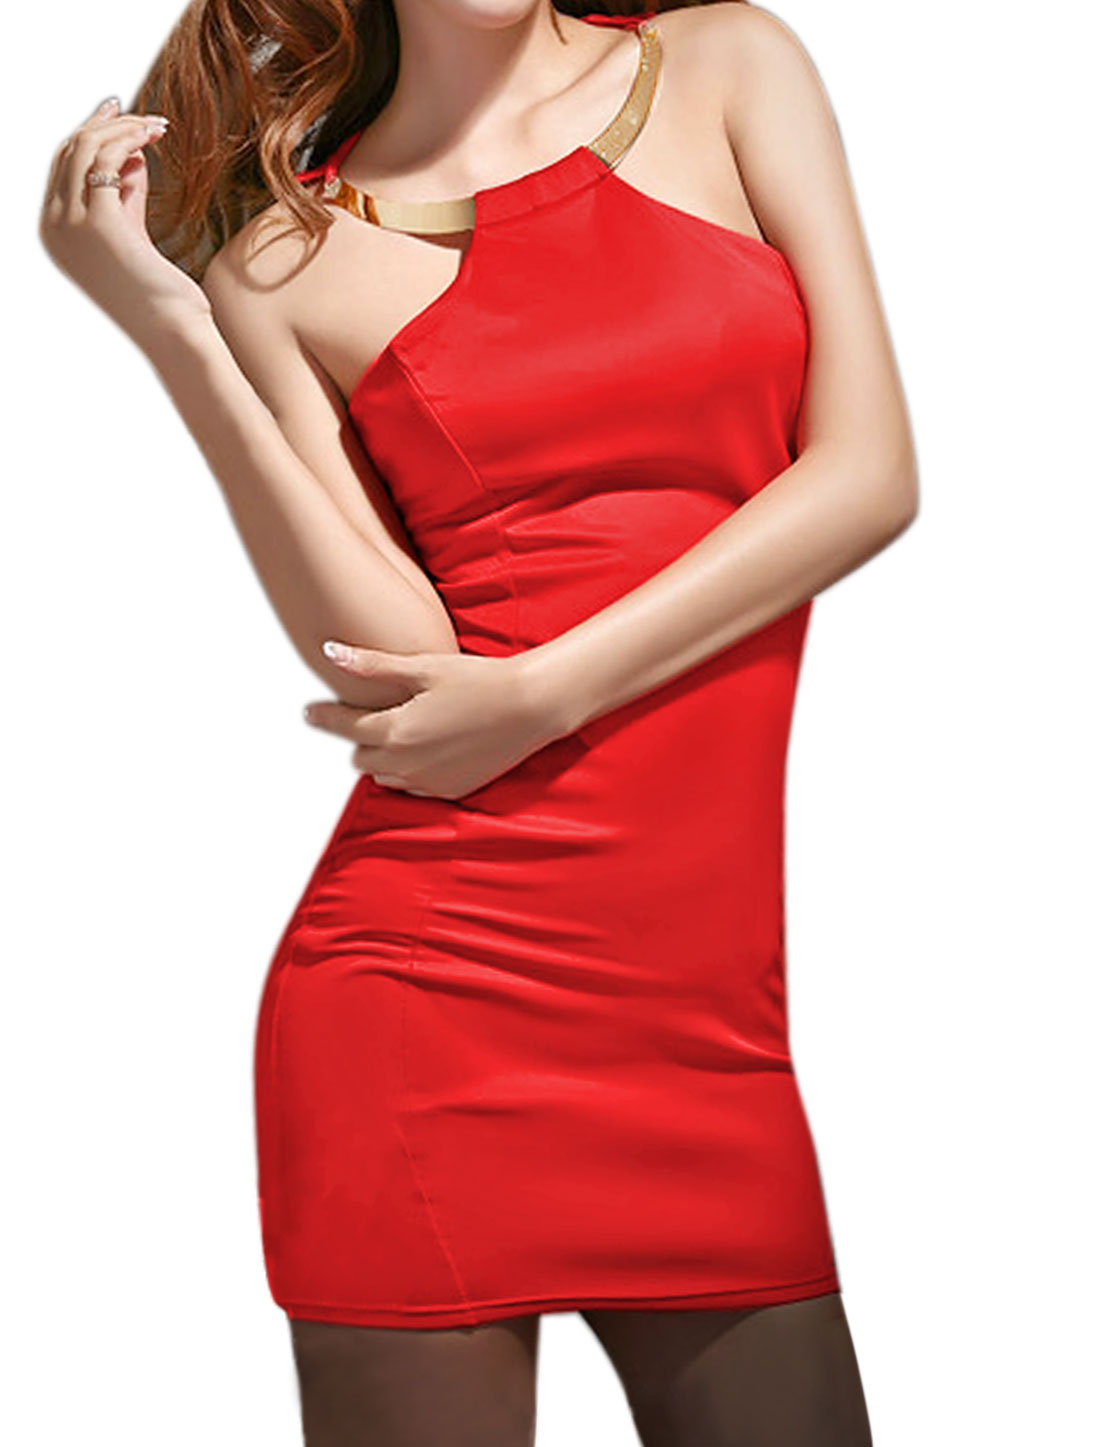 Women Metal Decor Halter Neck Cut Out Back Bodycon Dress Red M